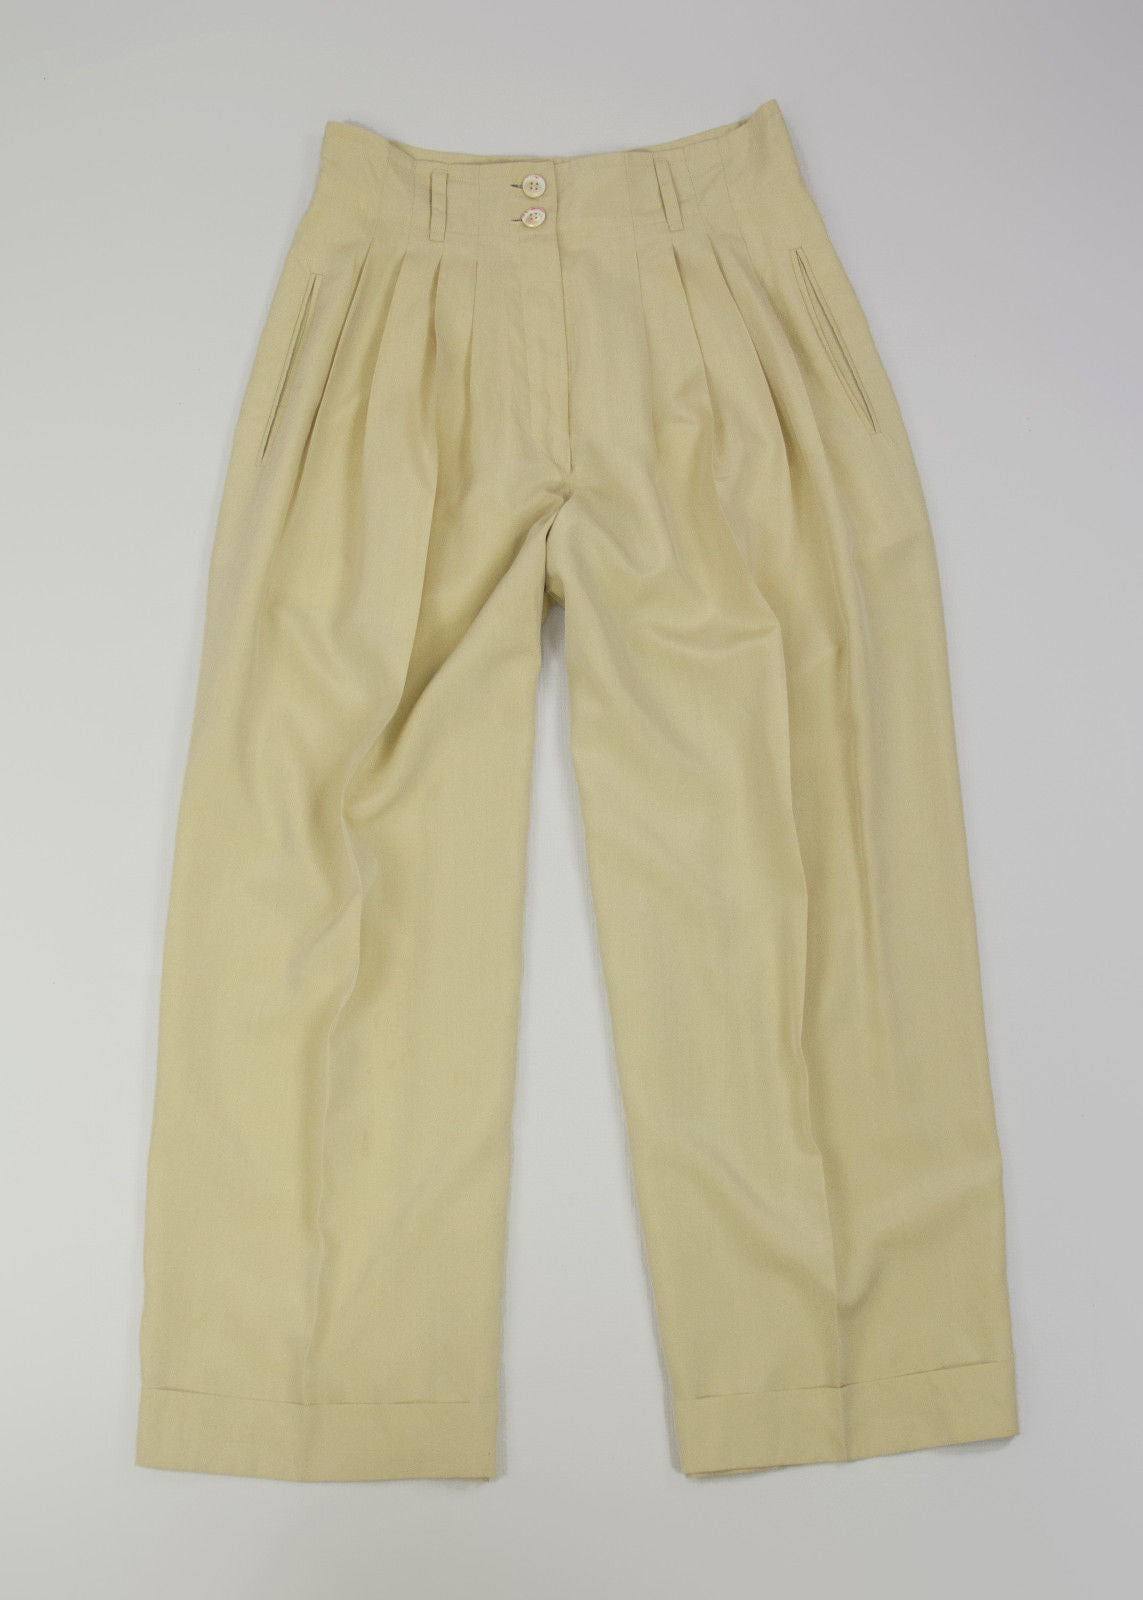 JIL SANDER Silk Wide Pleated Palazzo Pants Trousers IT42, EU36, UK10, US 6 - secondfirst